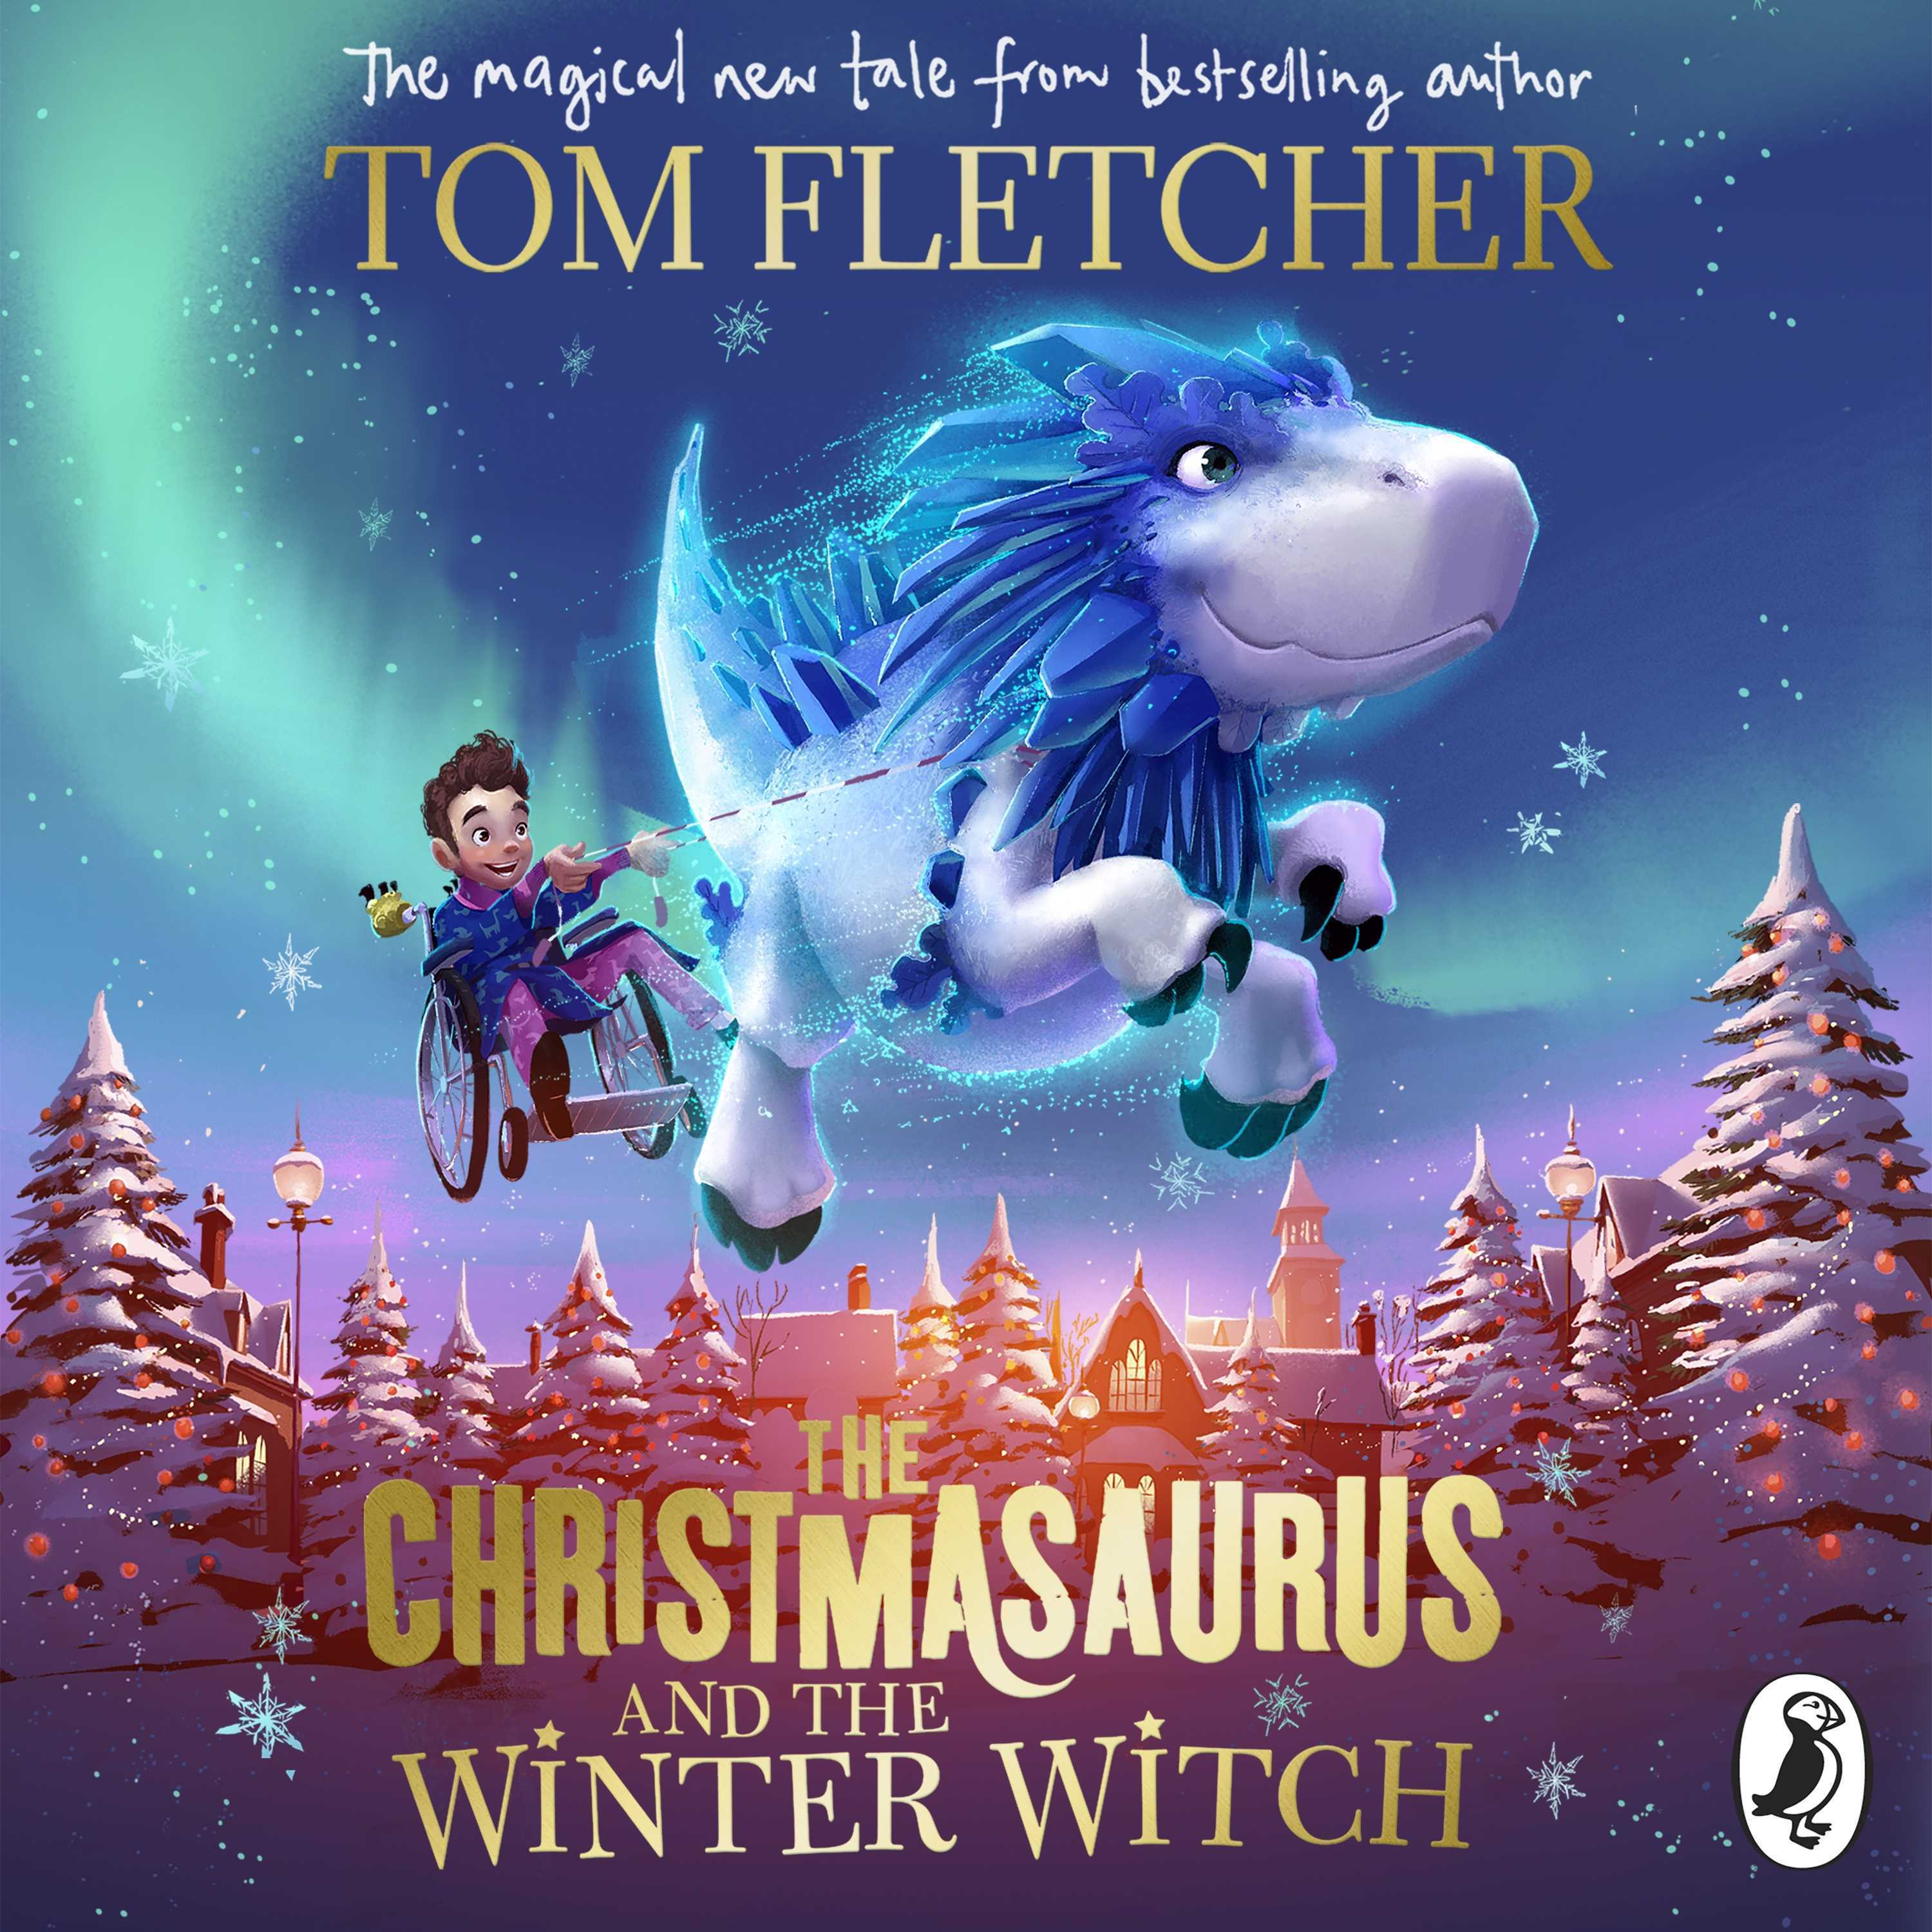 The Christmasaurus and the Winter Witch (CD Audiobook)